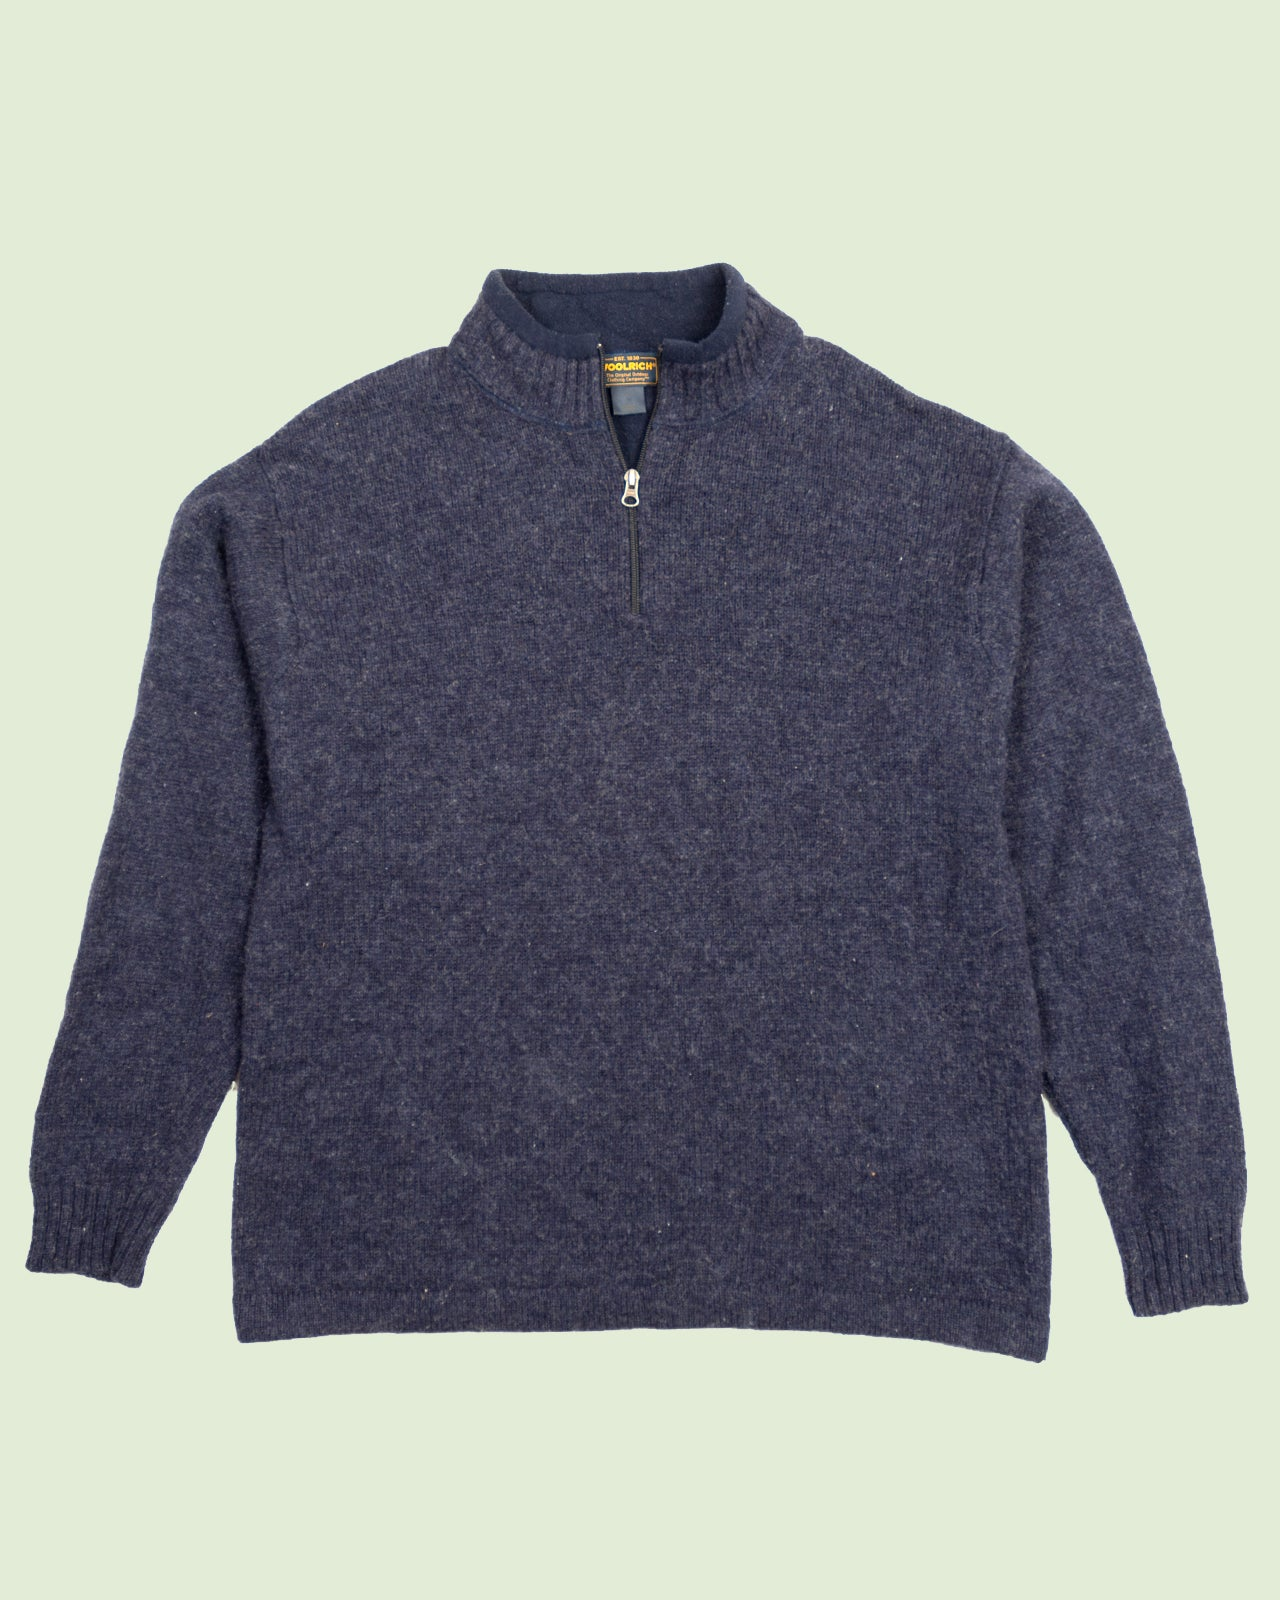 Woolrich Blue Sweater (XL)